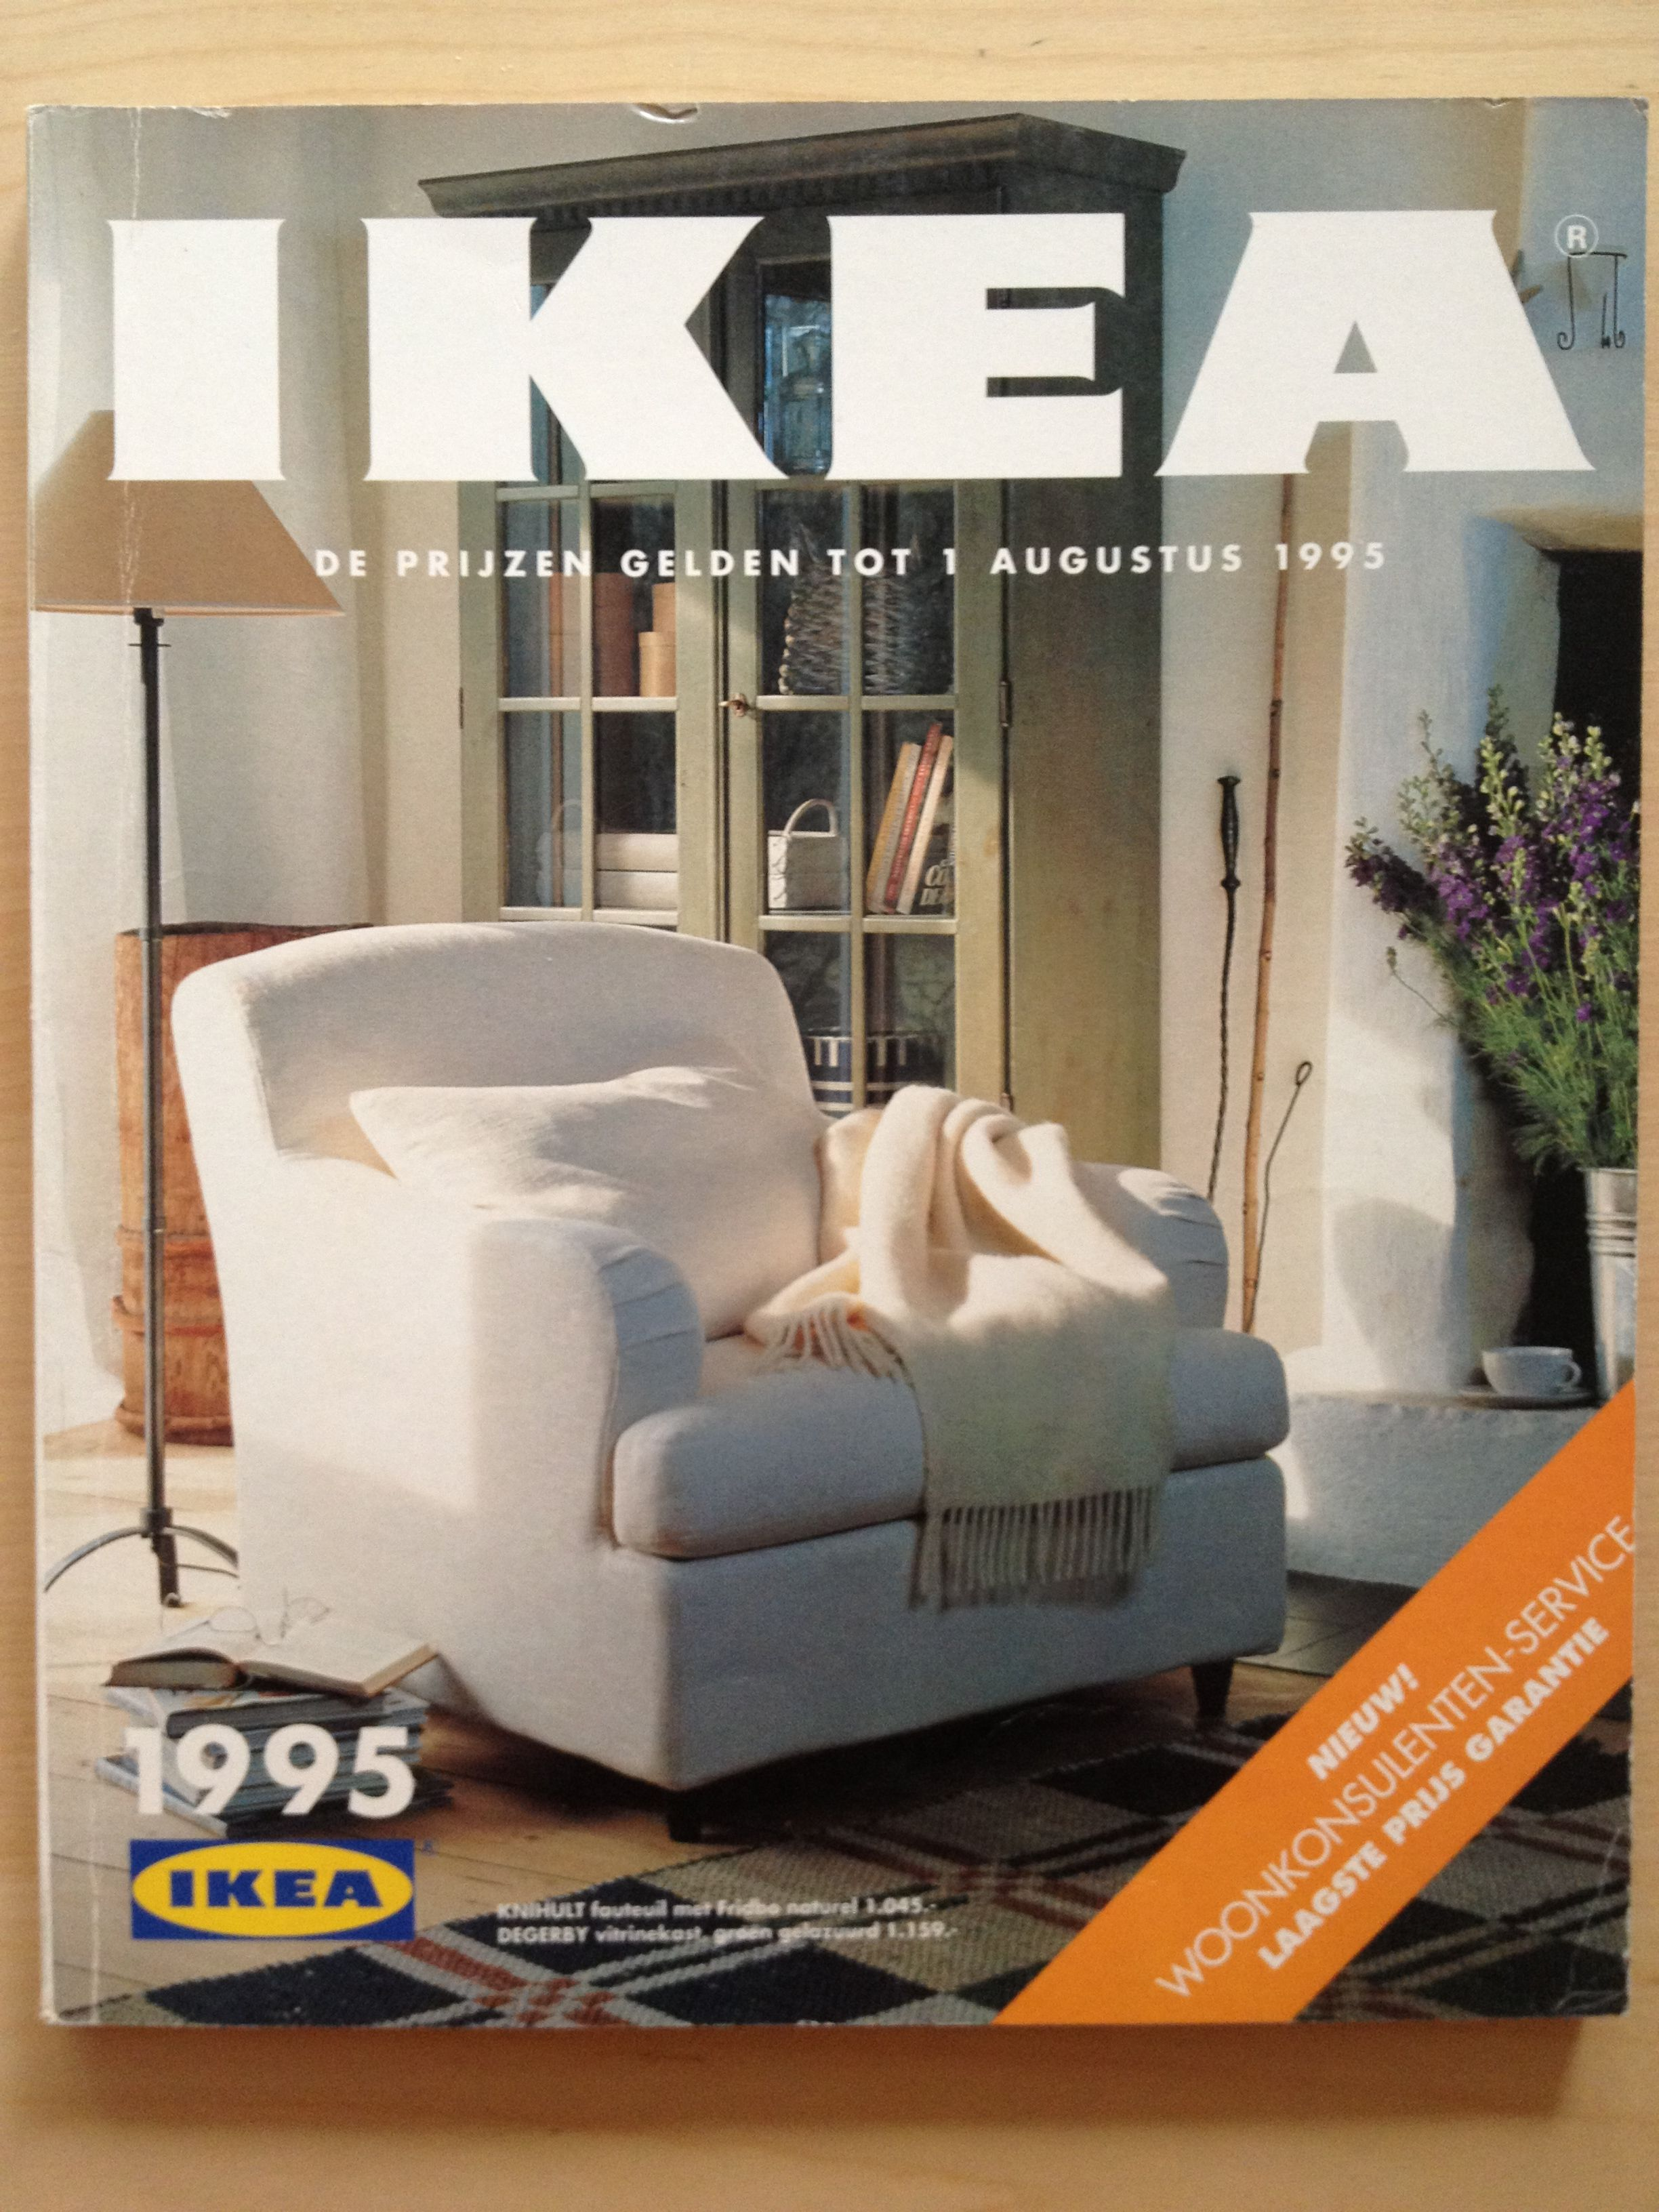 Ikea catalogue 1995 | Politics sem 1 | Catalog cover, Ikea